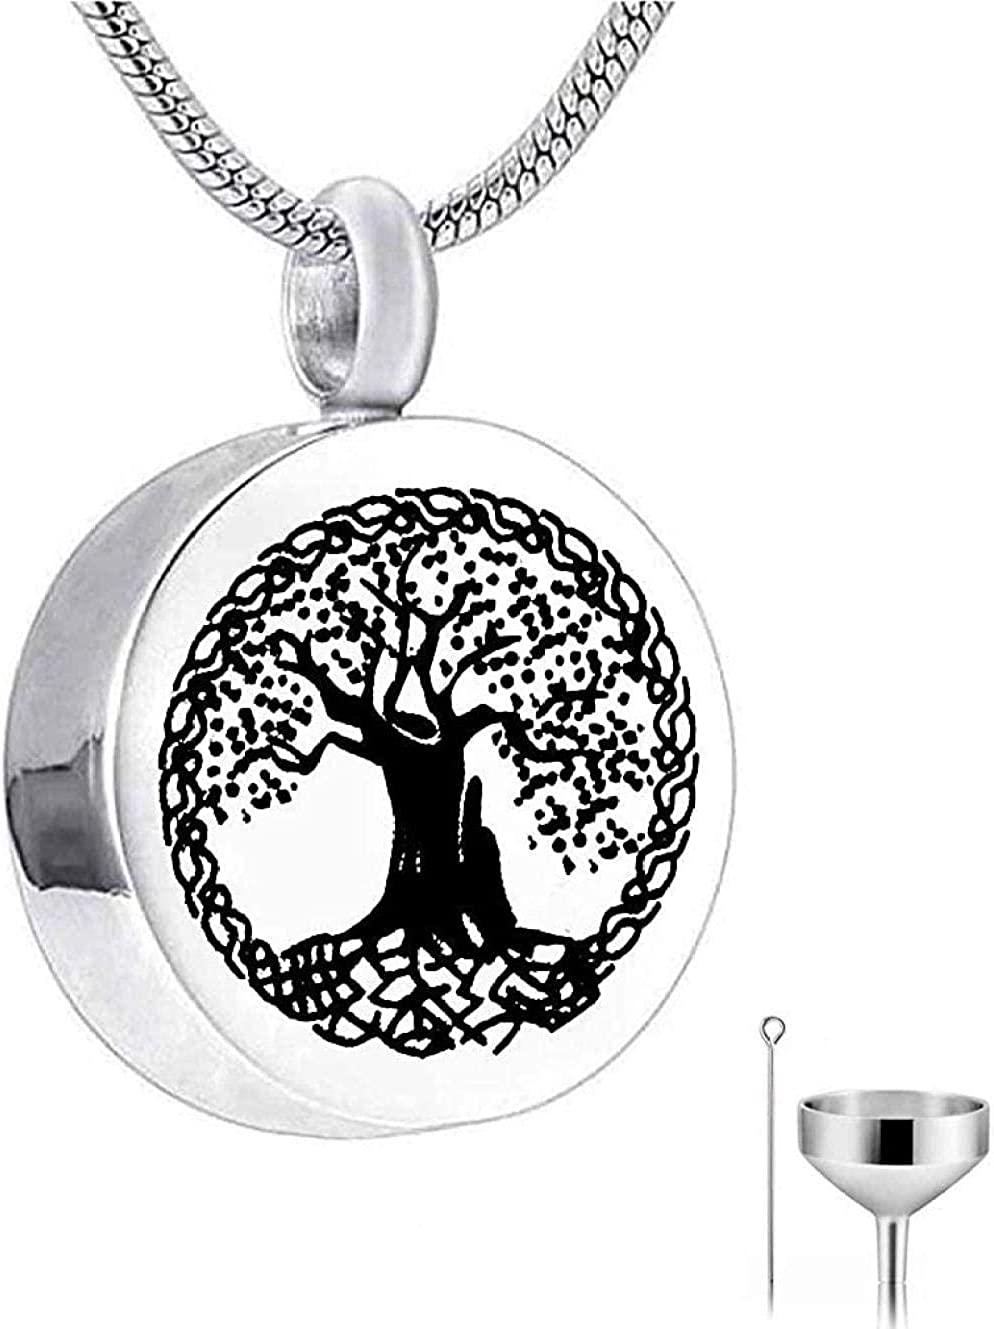 Memorial Jewelry Cremation Jewelry Urn Cremation Jewellery Ashes Chain Heart Pendant Necklace Off-White Tree of Life Memorial Grandma Aunt Wife Daughter Mom R